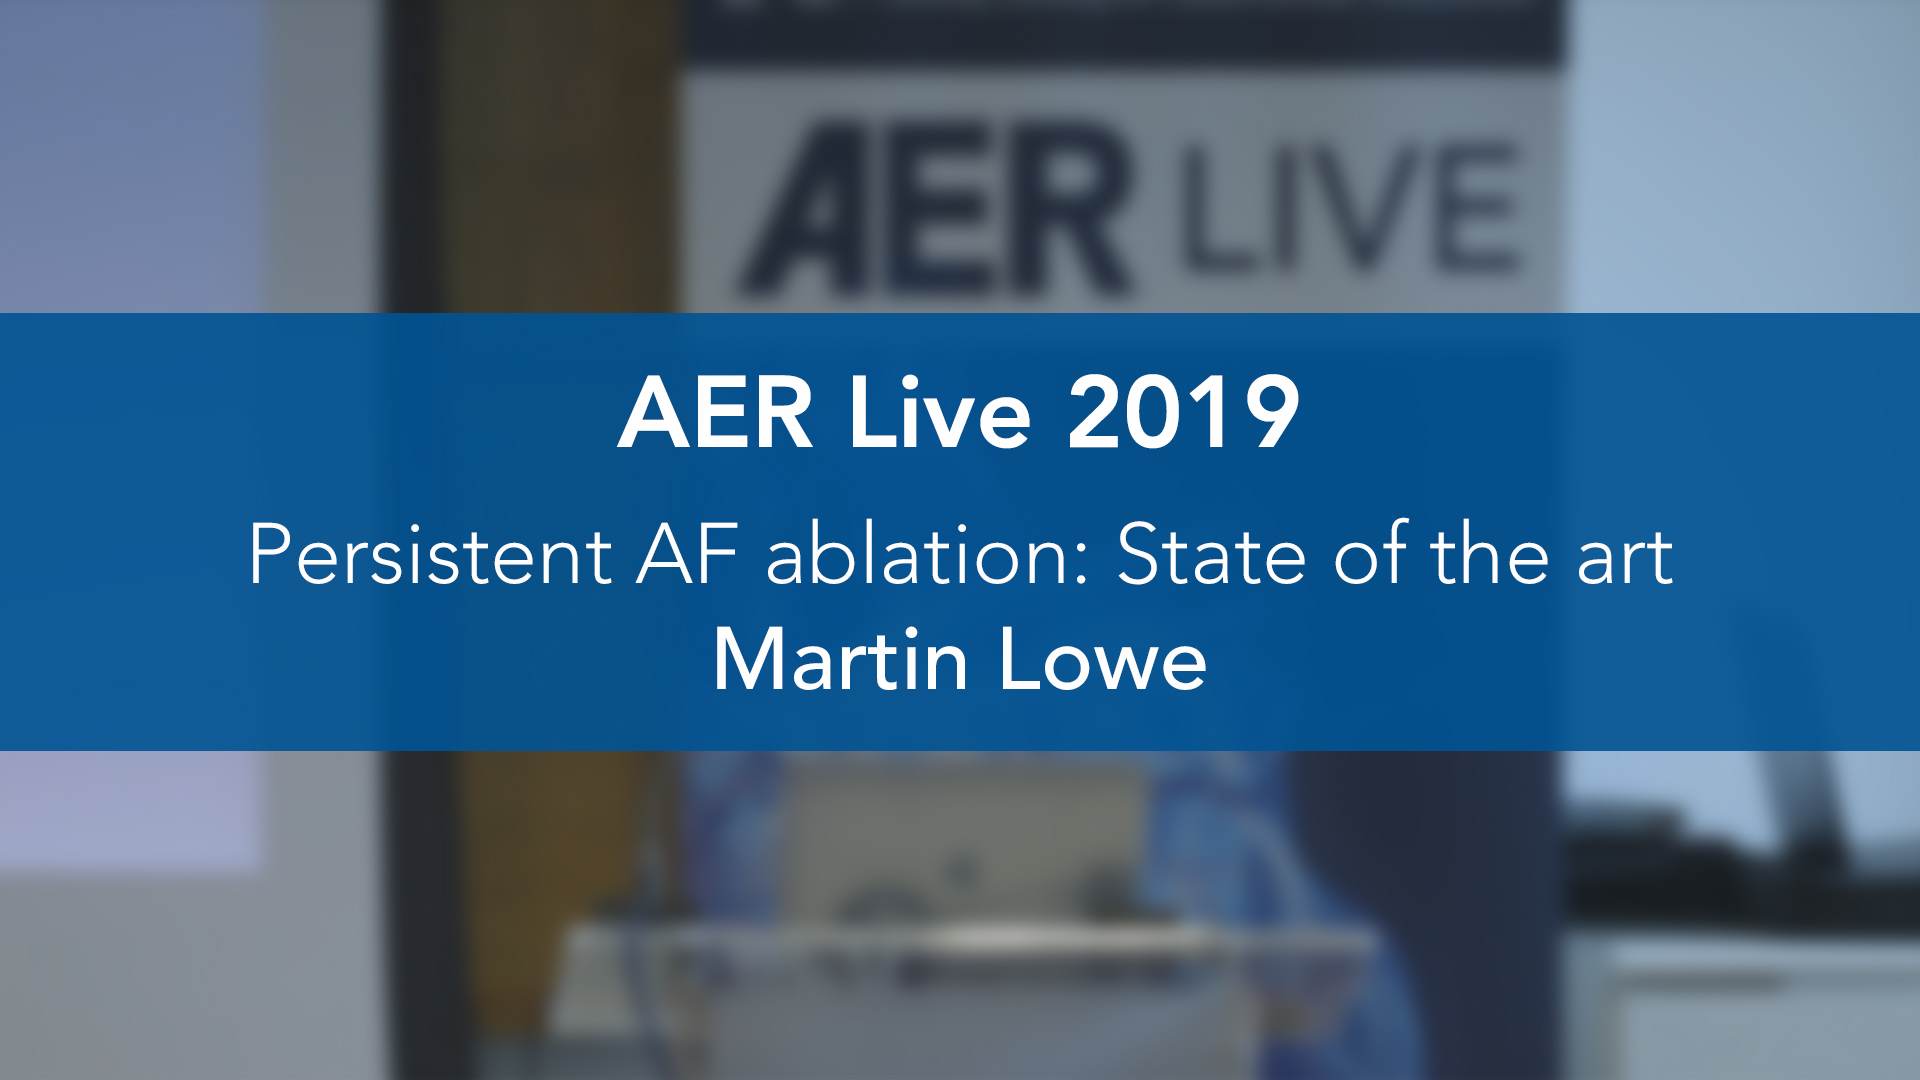 AER Live 2019: Persistent AF ablation: State of the art — Martin Lowe